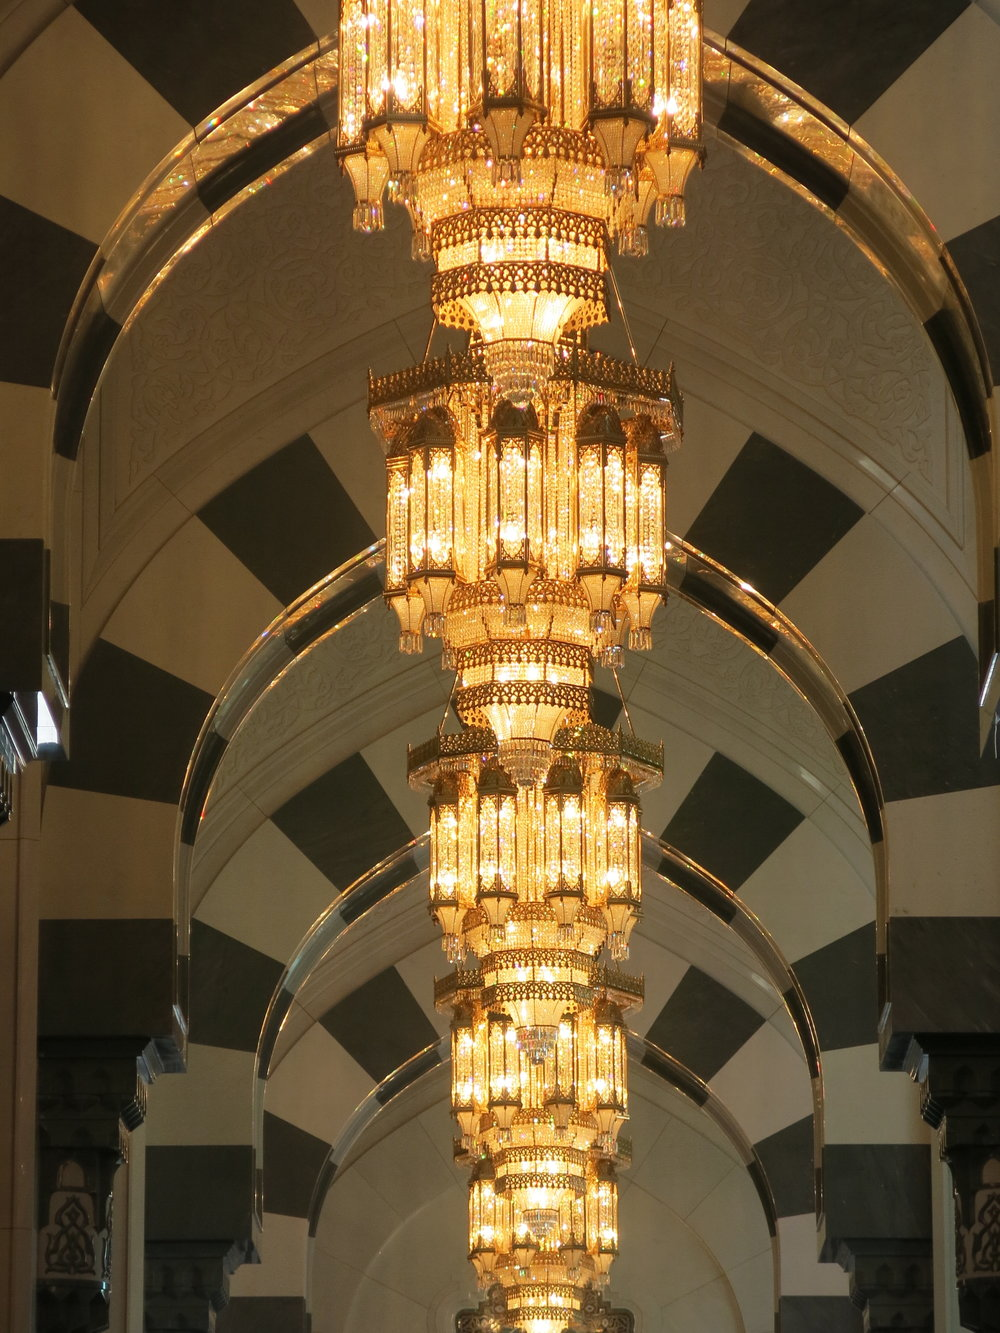 Wonderful alignment of chandeliers in a side gallery